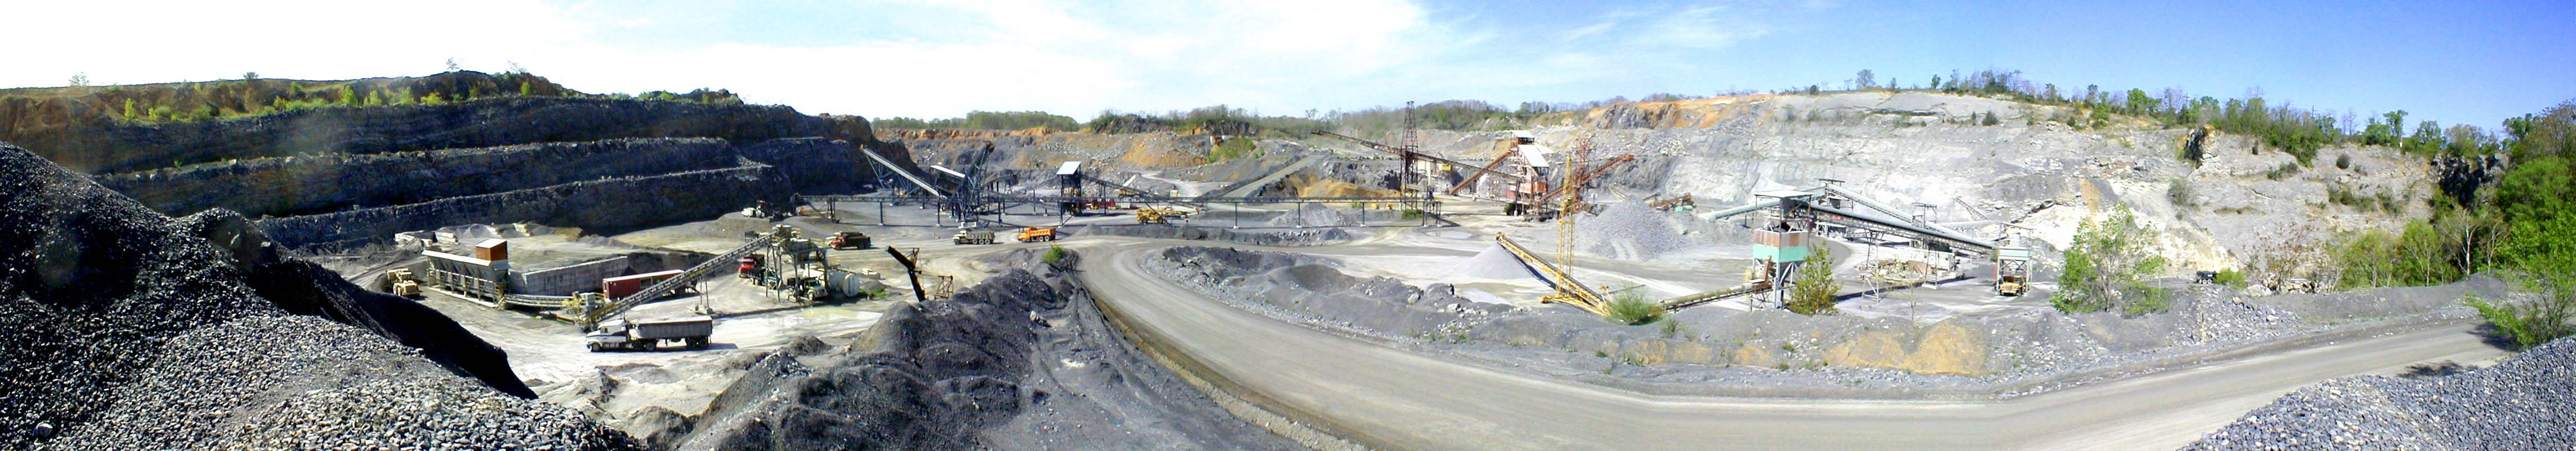 Winchester Quarry